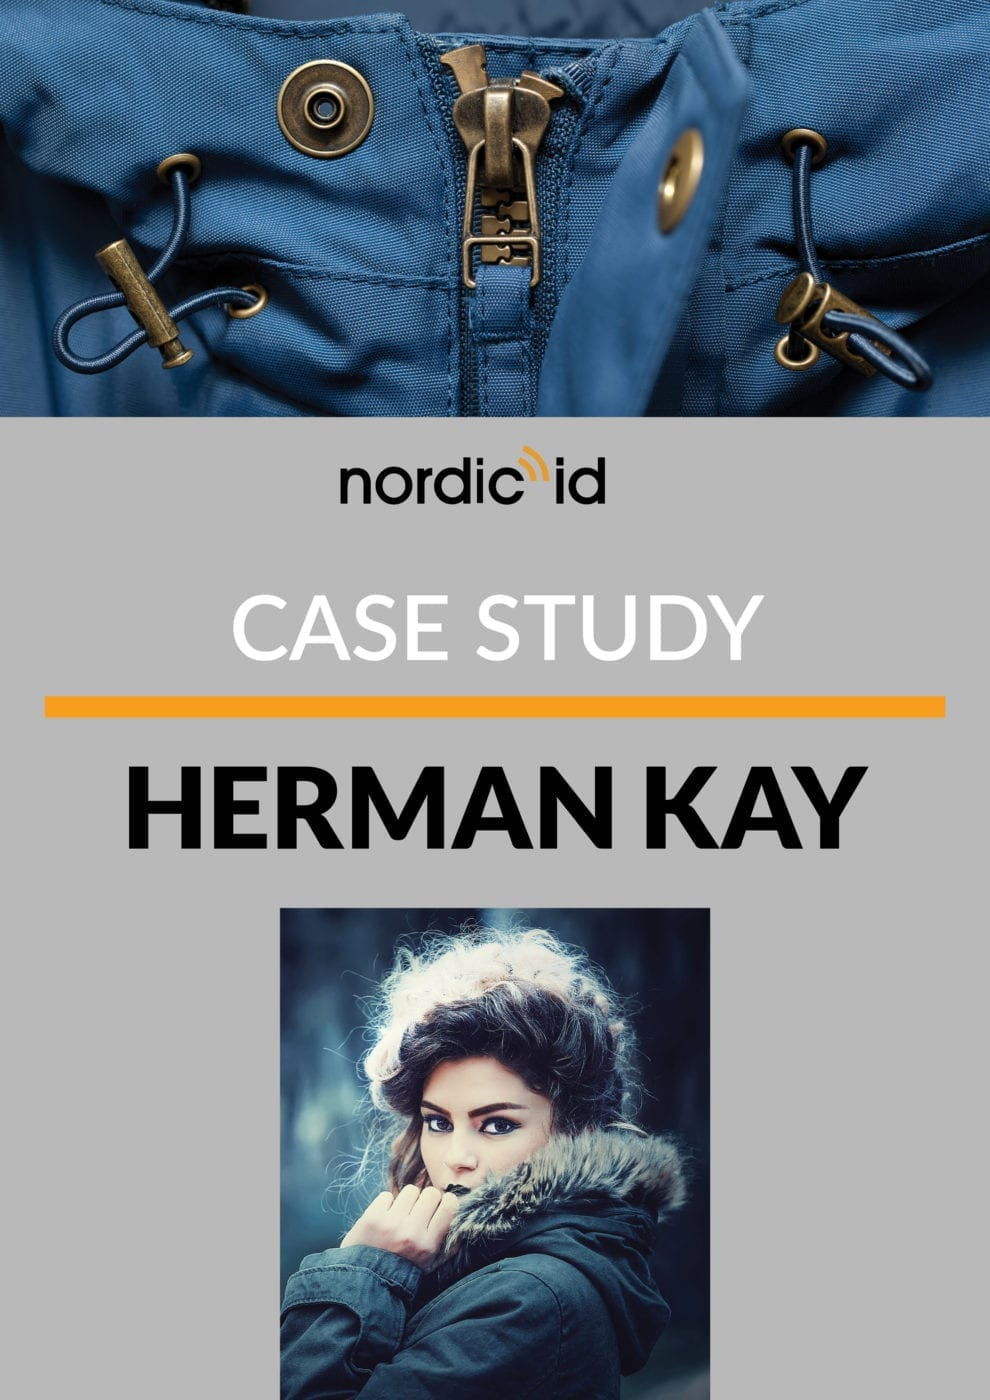 Case Study Herman Kay by Nordic ID